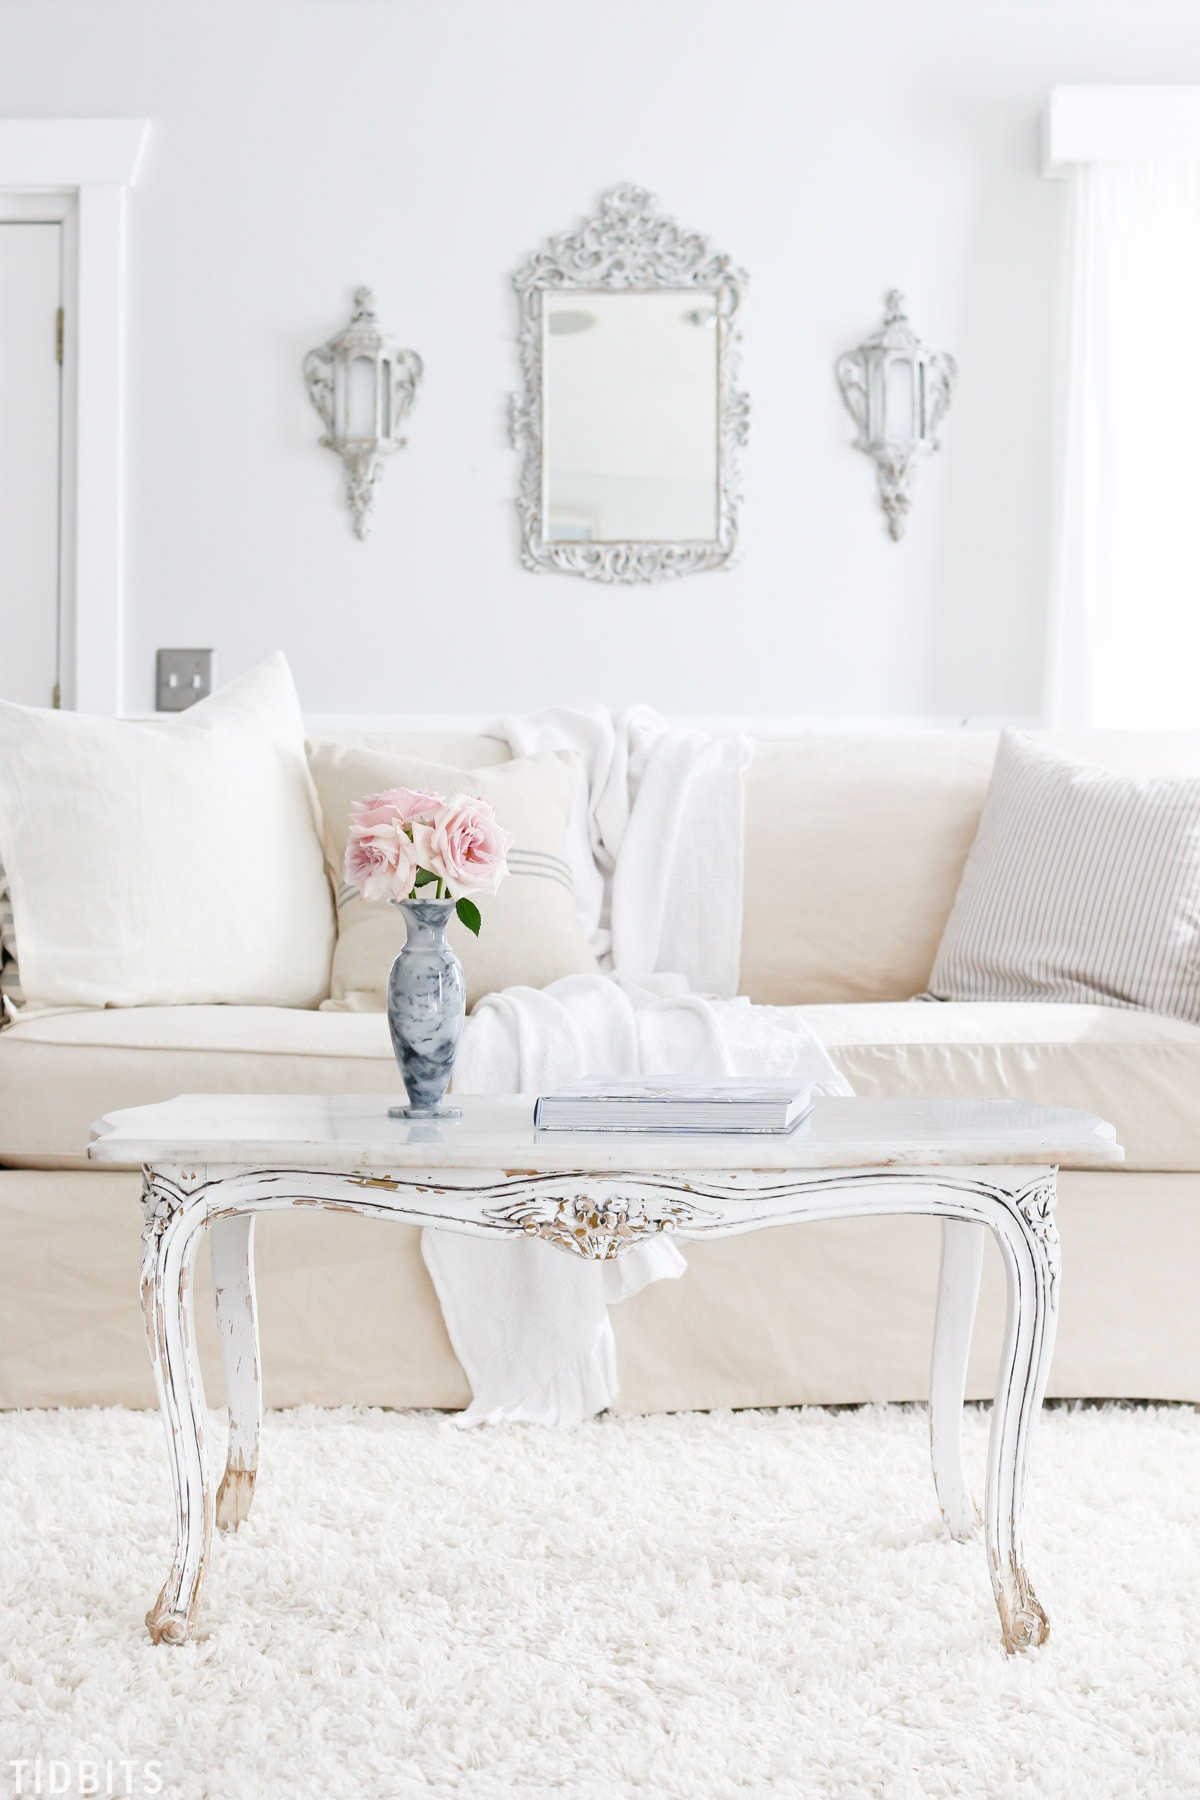 natural sofa deodorizer 7 sofala street riverwood nsw tips and tricks for cleaning slipcovers tidbits naturally 4 kids white